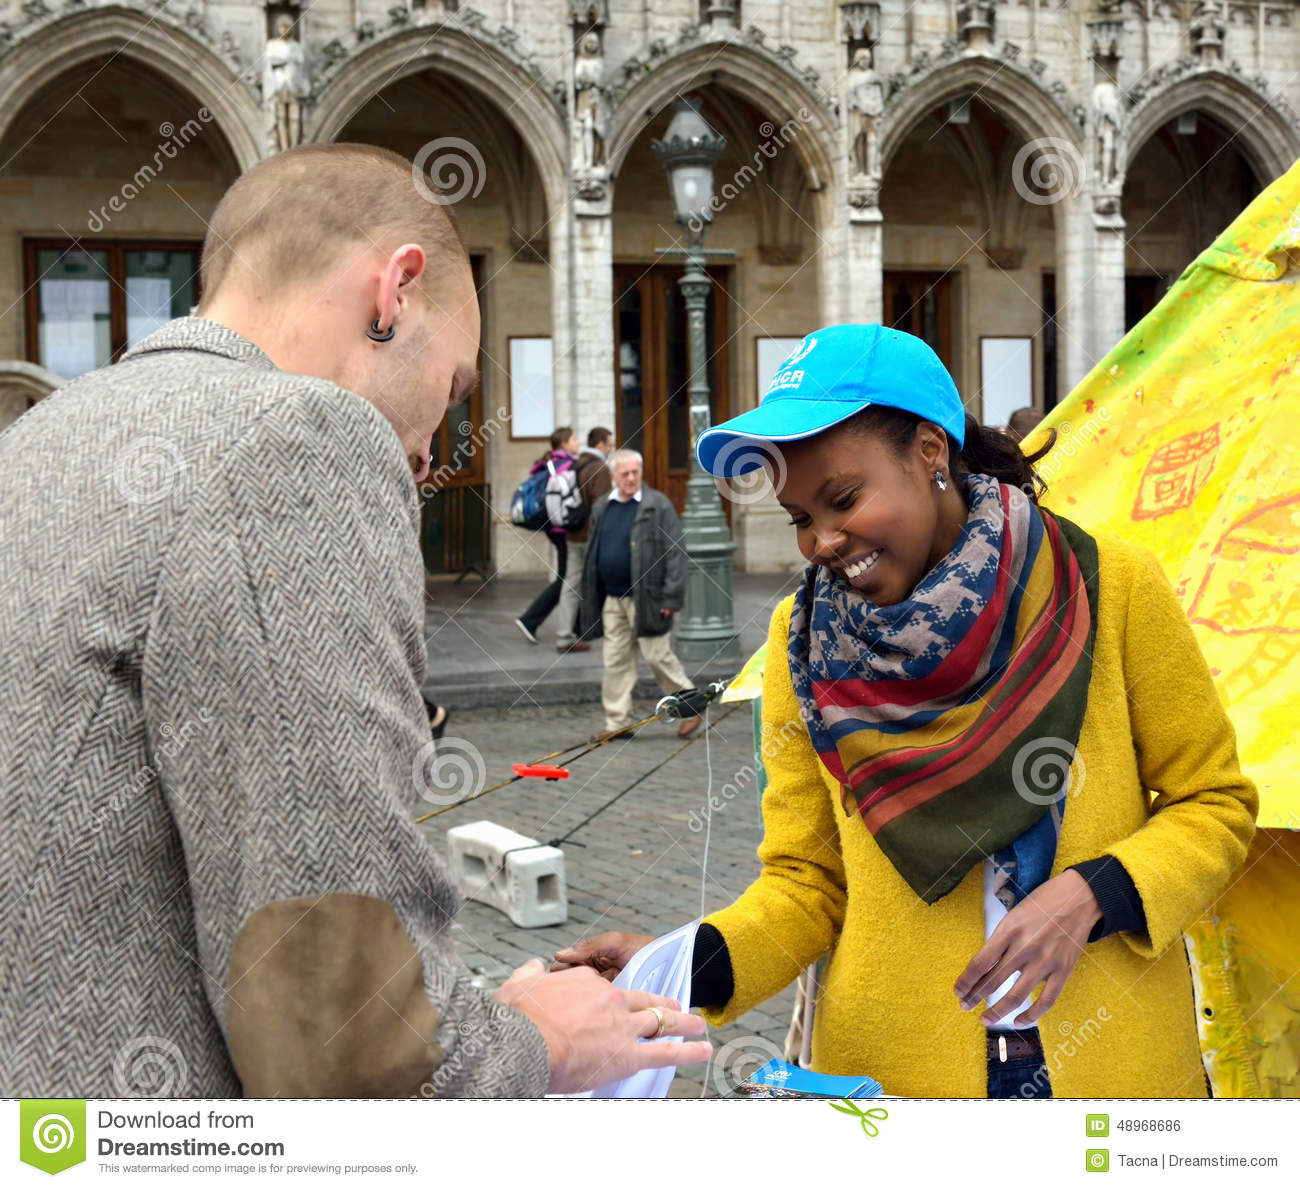 UN Day on Grand Place in Brussels, Belgium